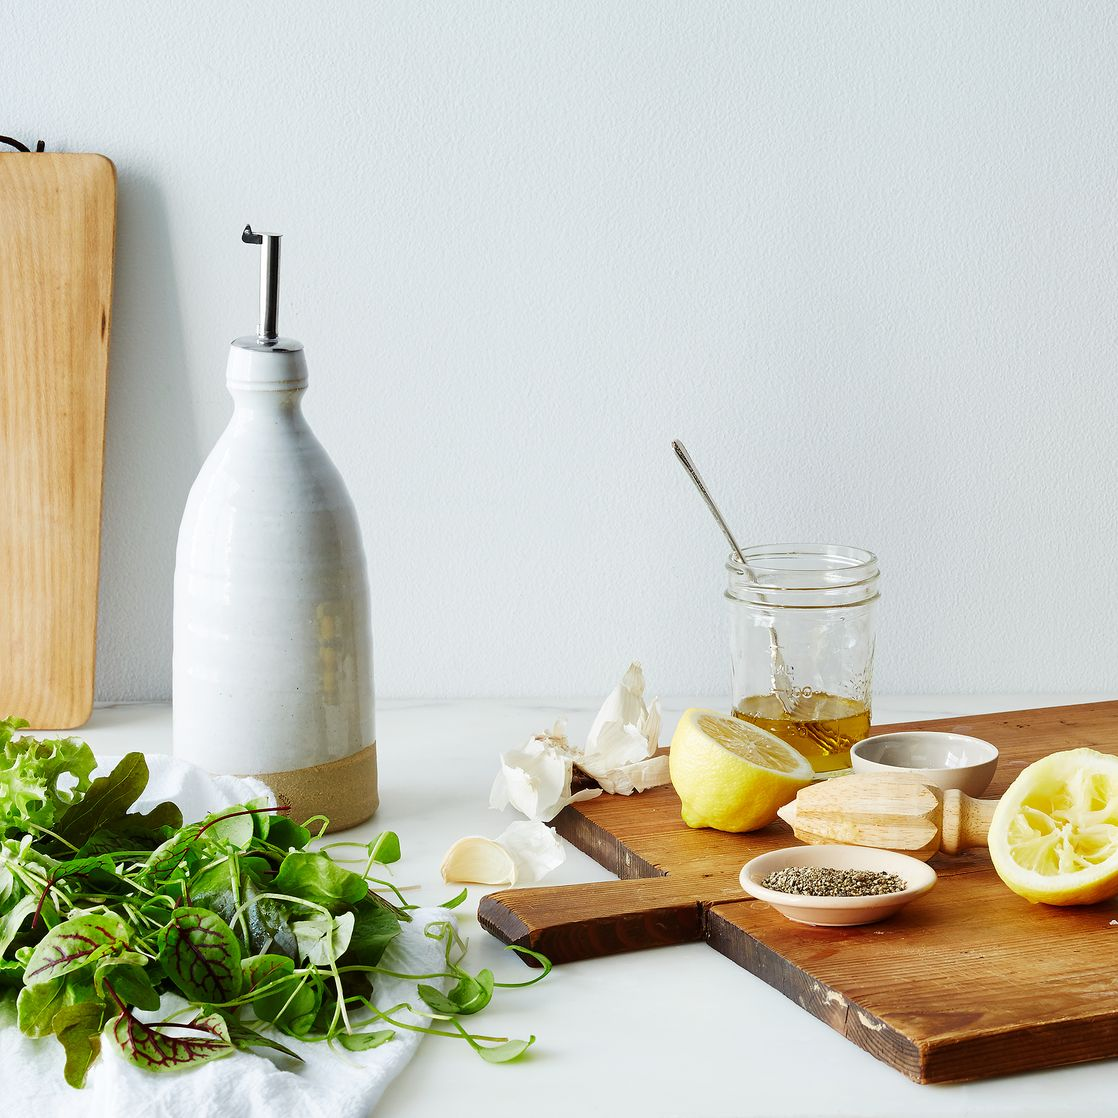 olive oil cruet on food - olive oil cruet